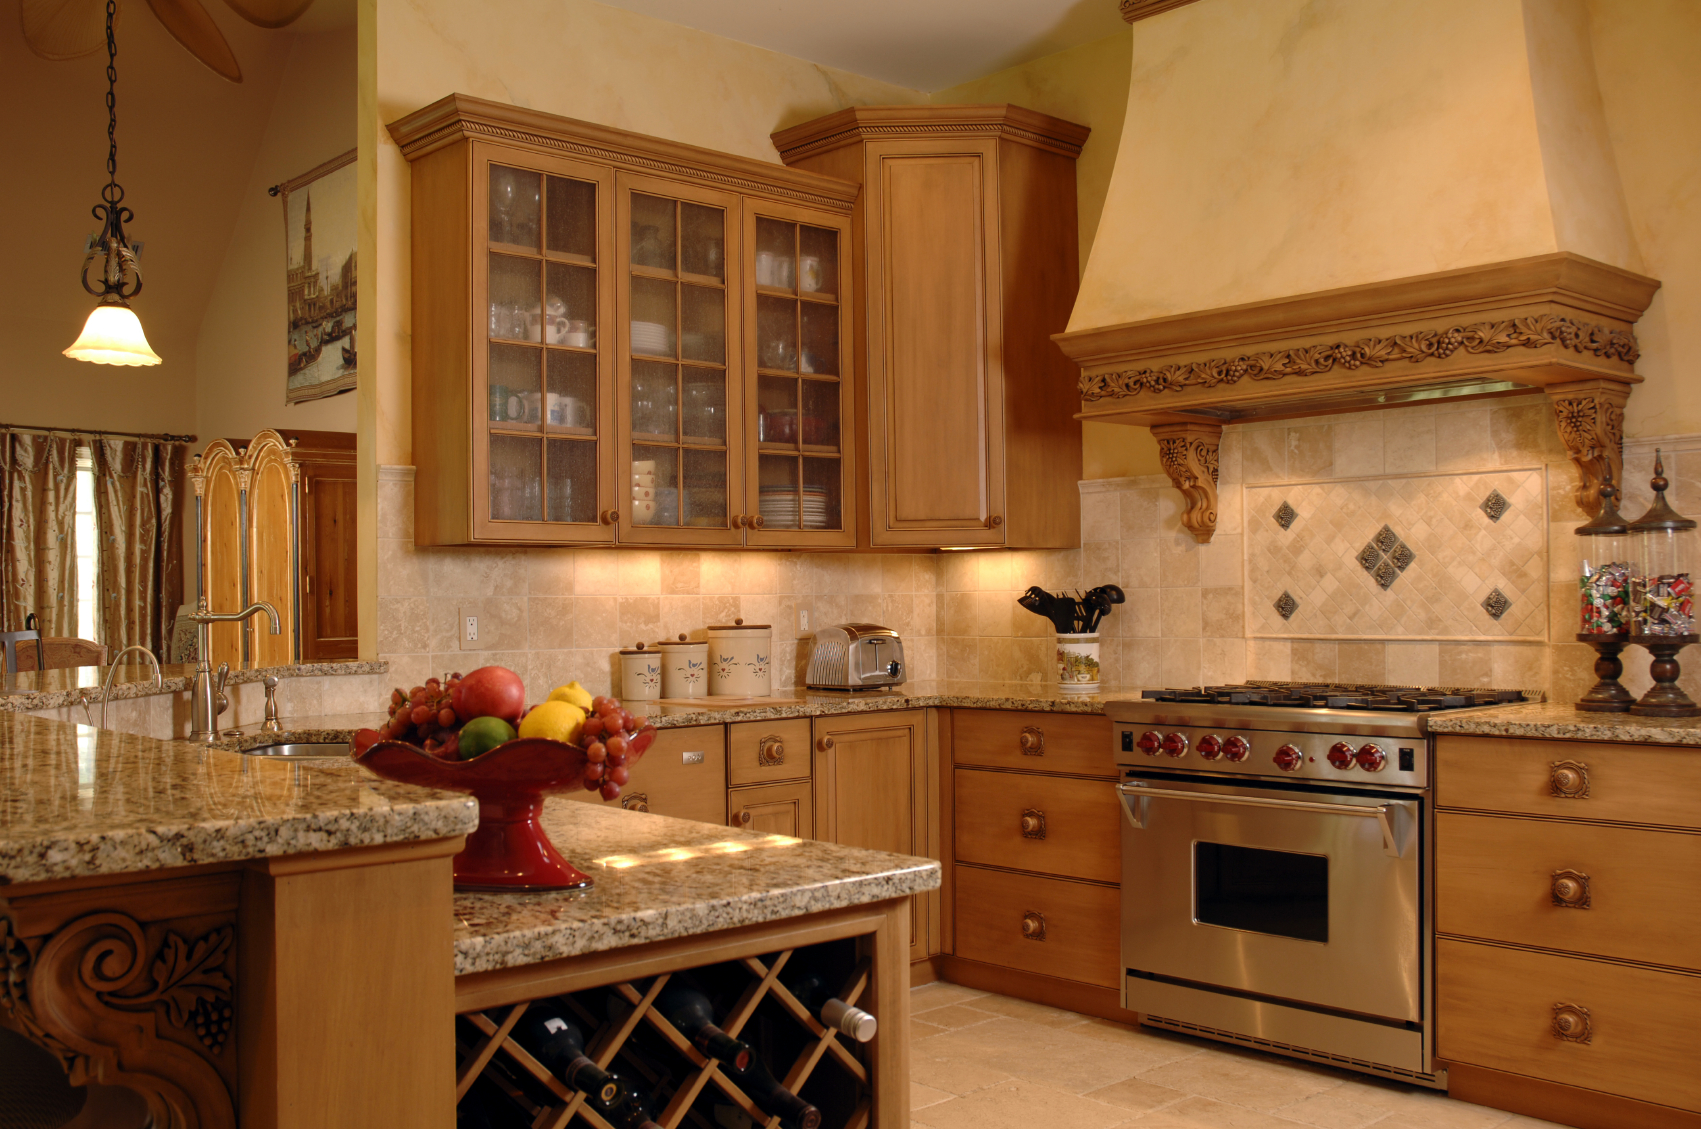 warm sandy tones unify this kitchen with large tile backsplash